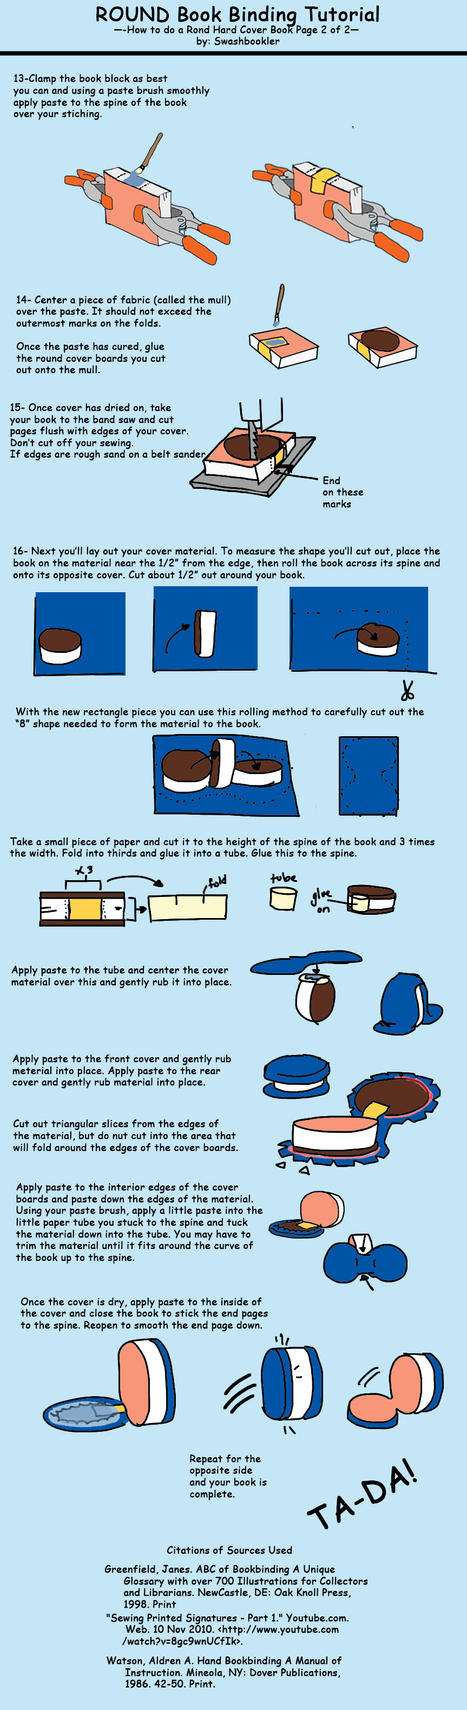 Round Book tutorial Page 2 by Swashbookler